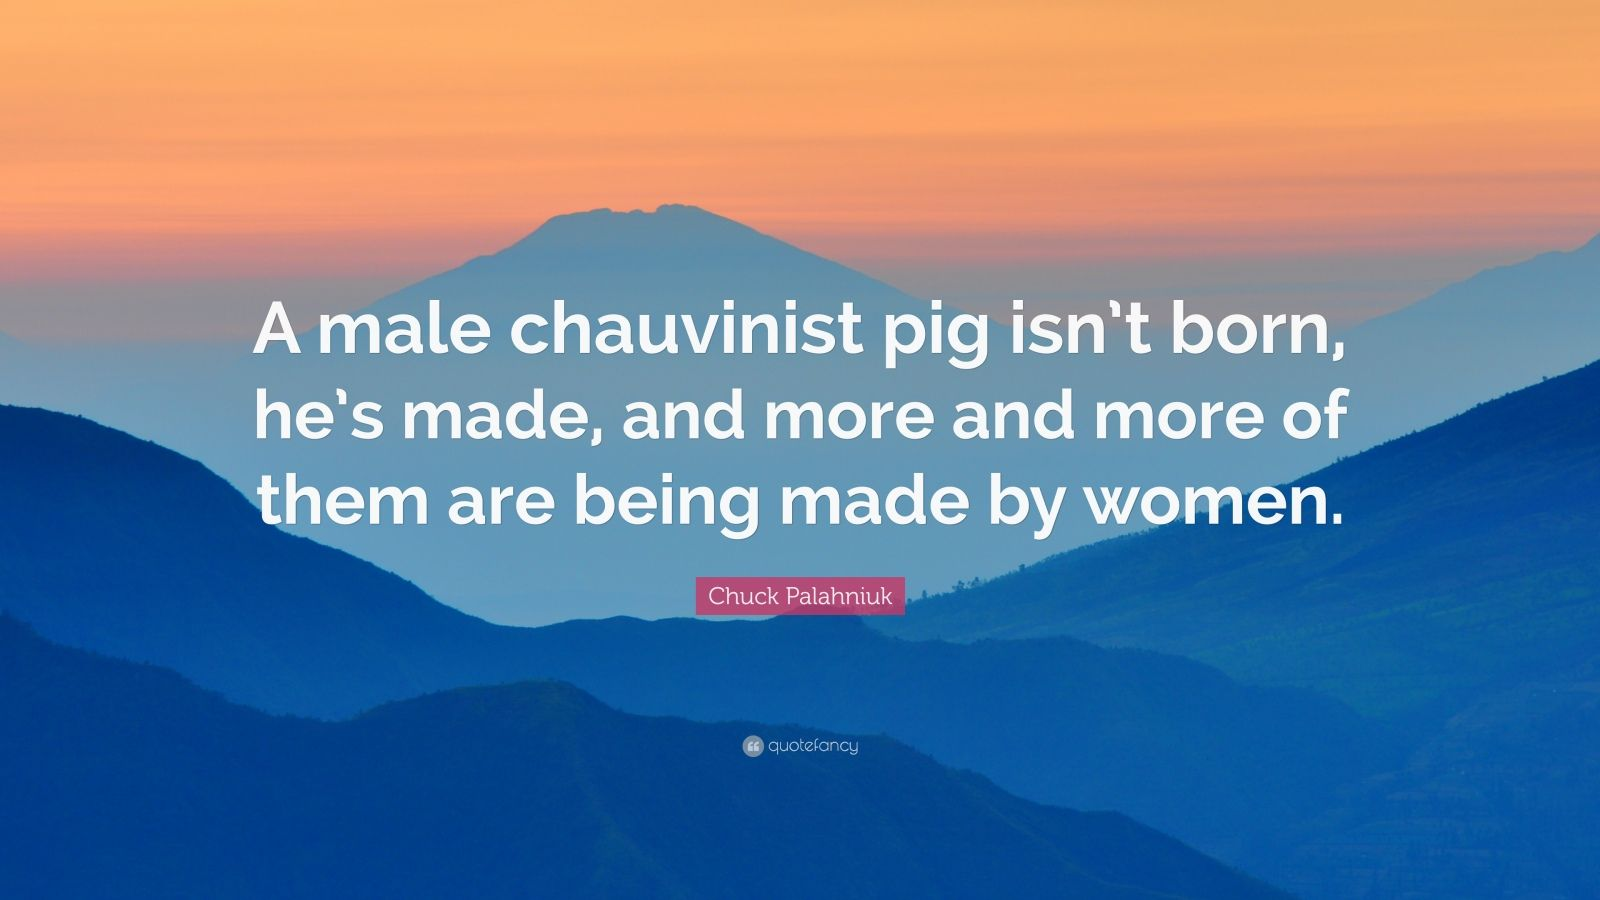 """Chuck Palahniuk Quote: """"A male chauvinist pig isn't born, he's made, and more and more of them are being made by women."""""""